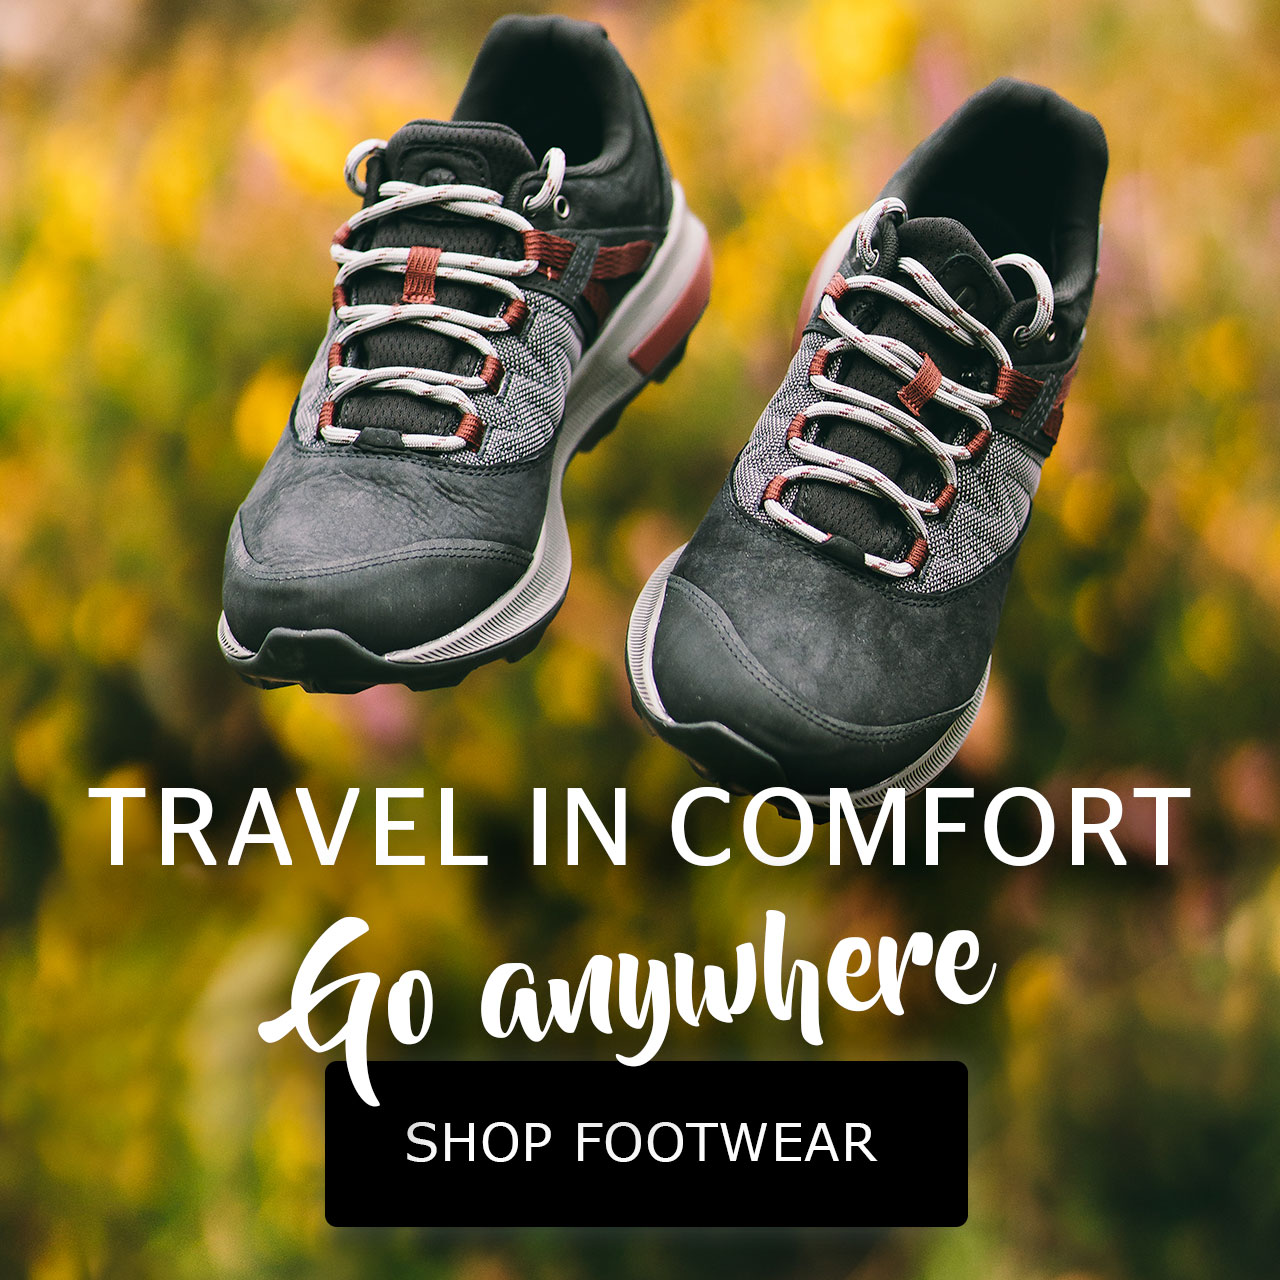 Travel in comfort - go anywhere